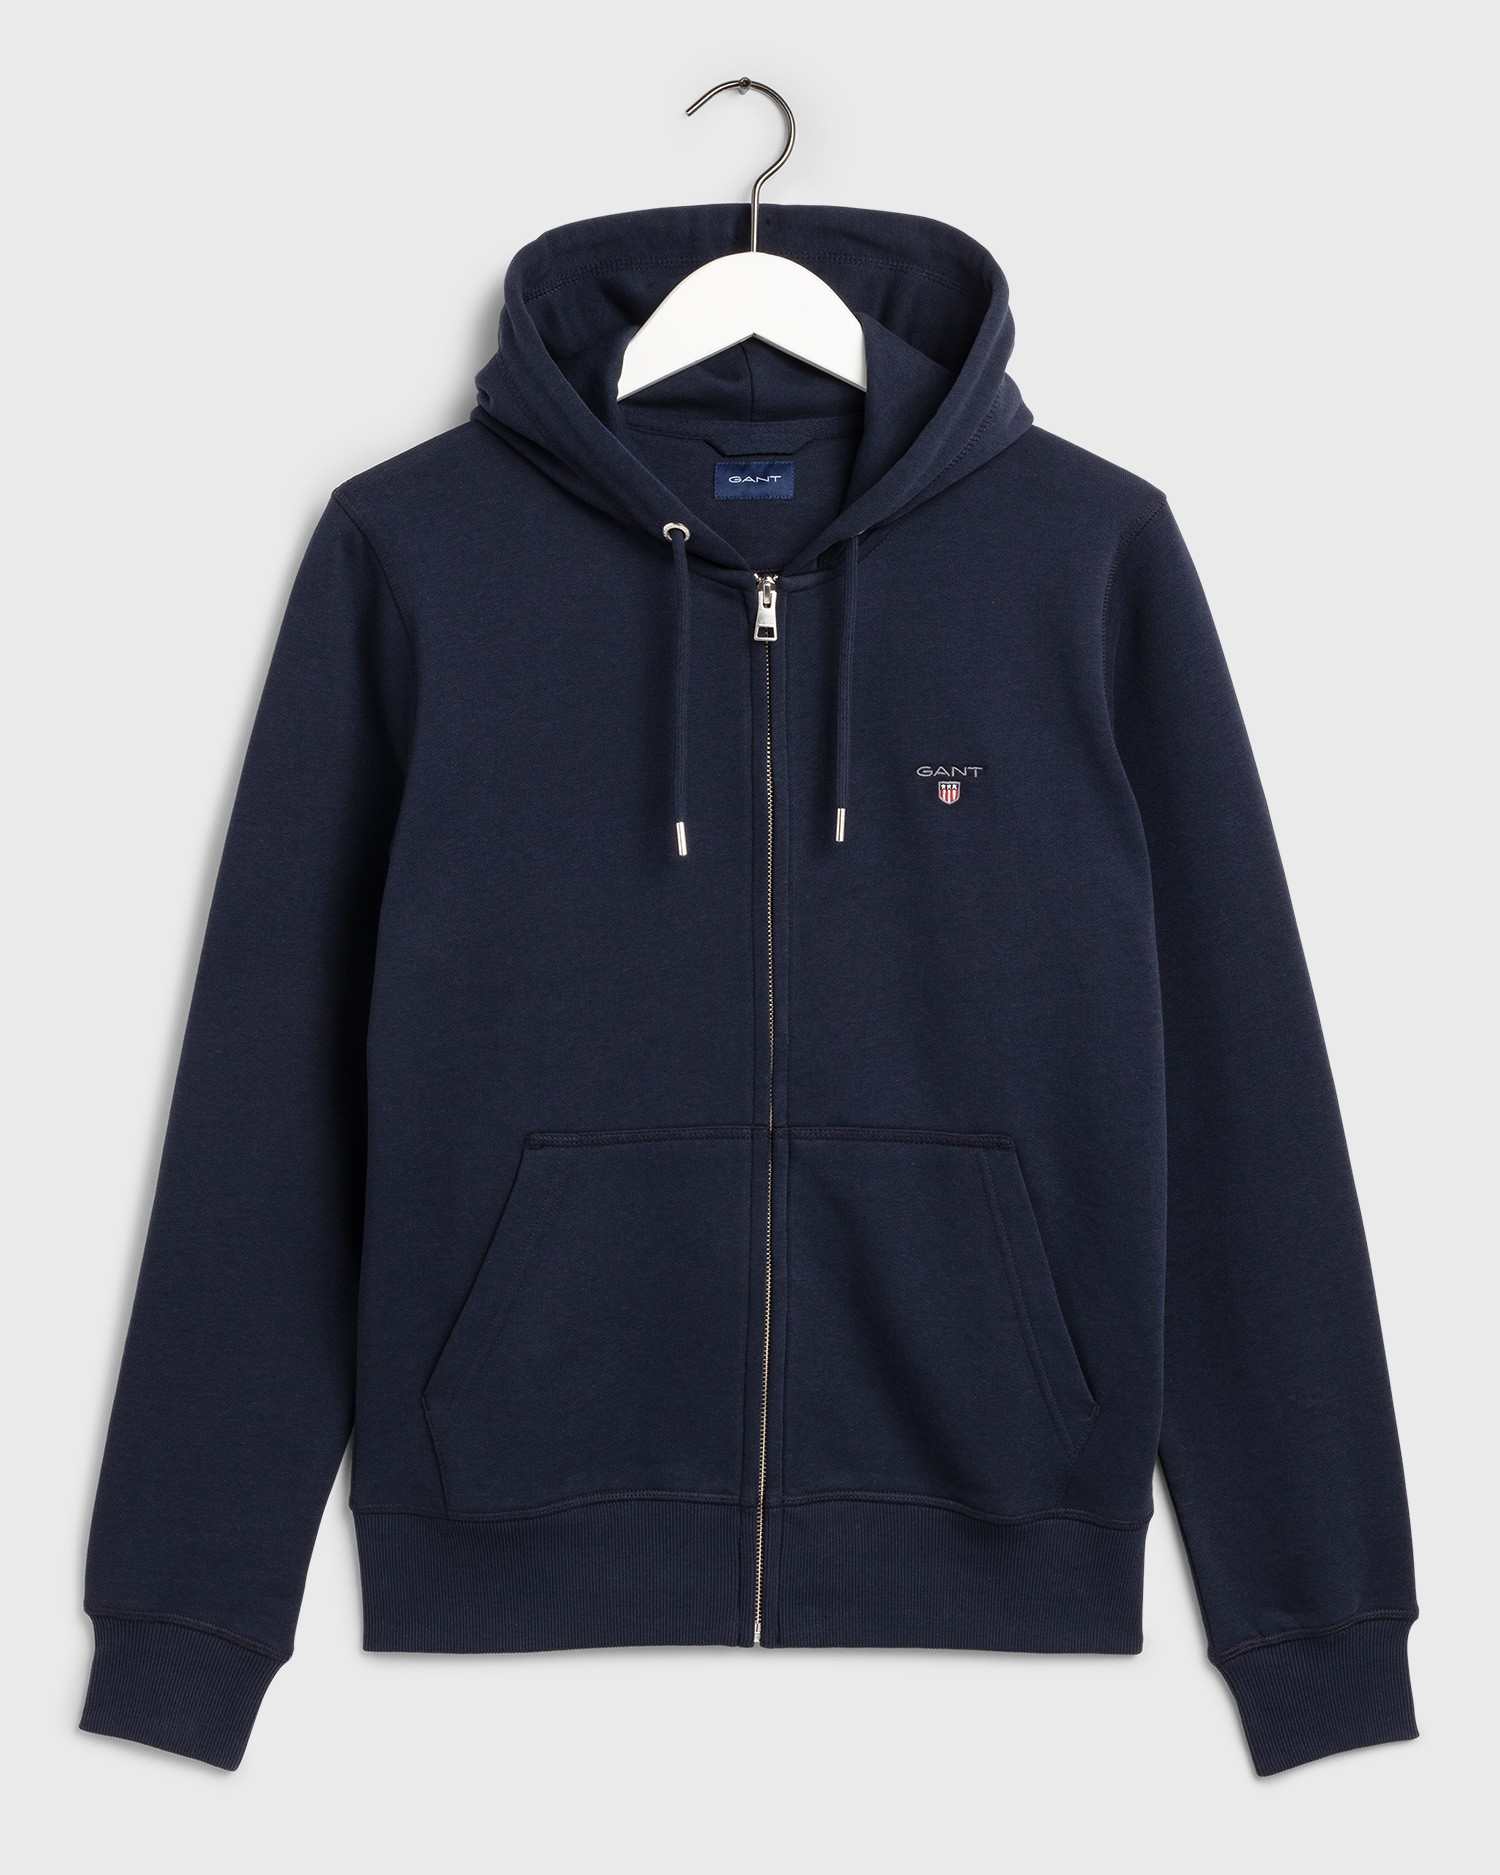 GANT Men's The Original Full Zip Hoodie - 2046011